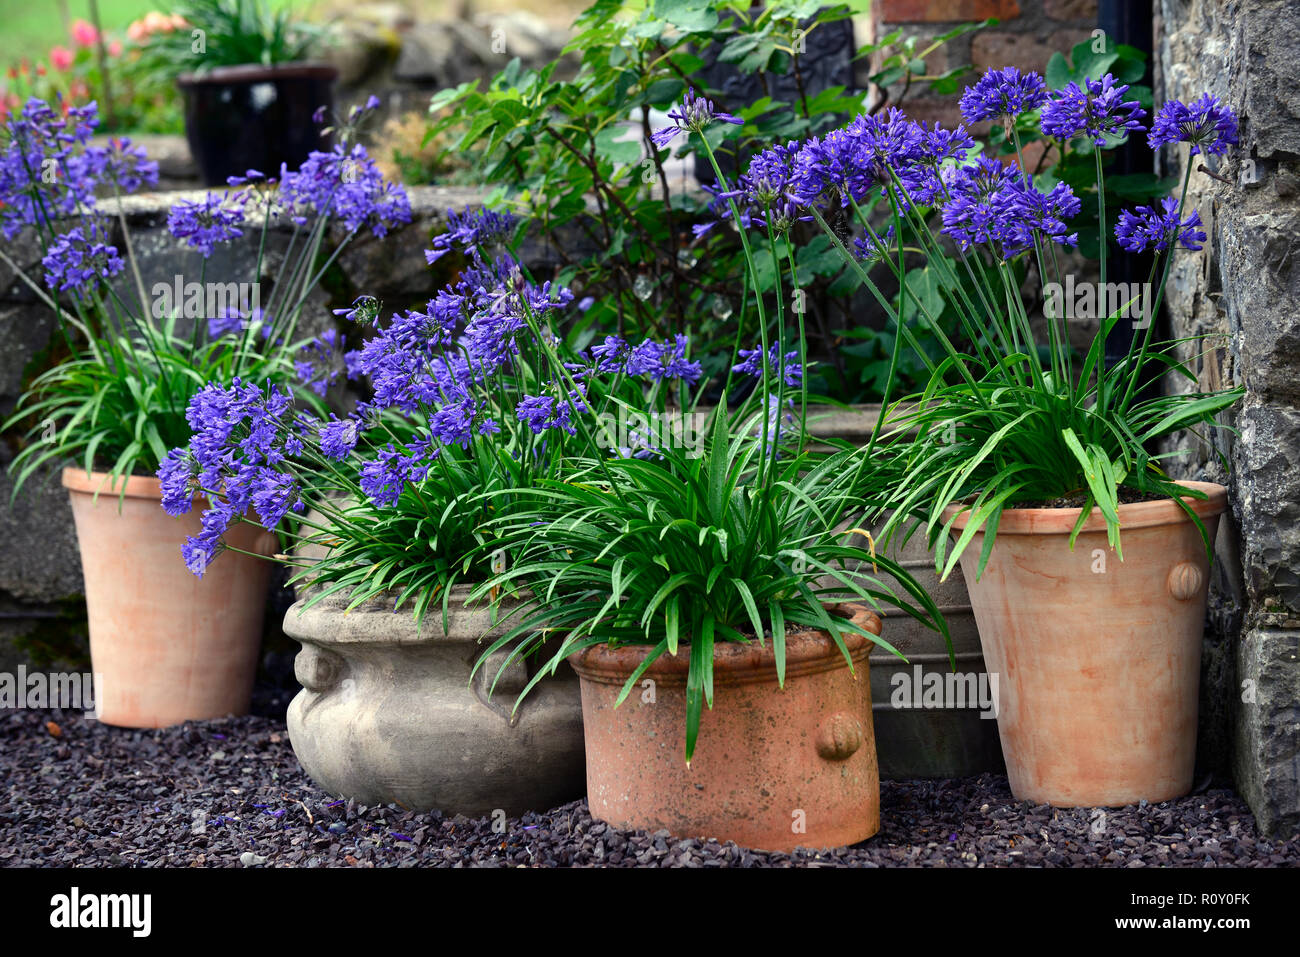 terracotta pots,containers,plant display,patio,agapanthus navy blue,pots,garden,RM Floral - Stock Image